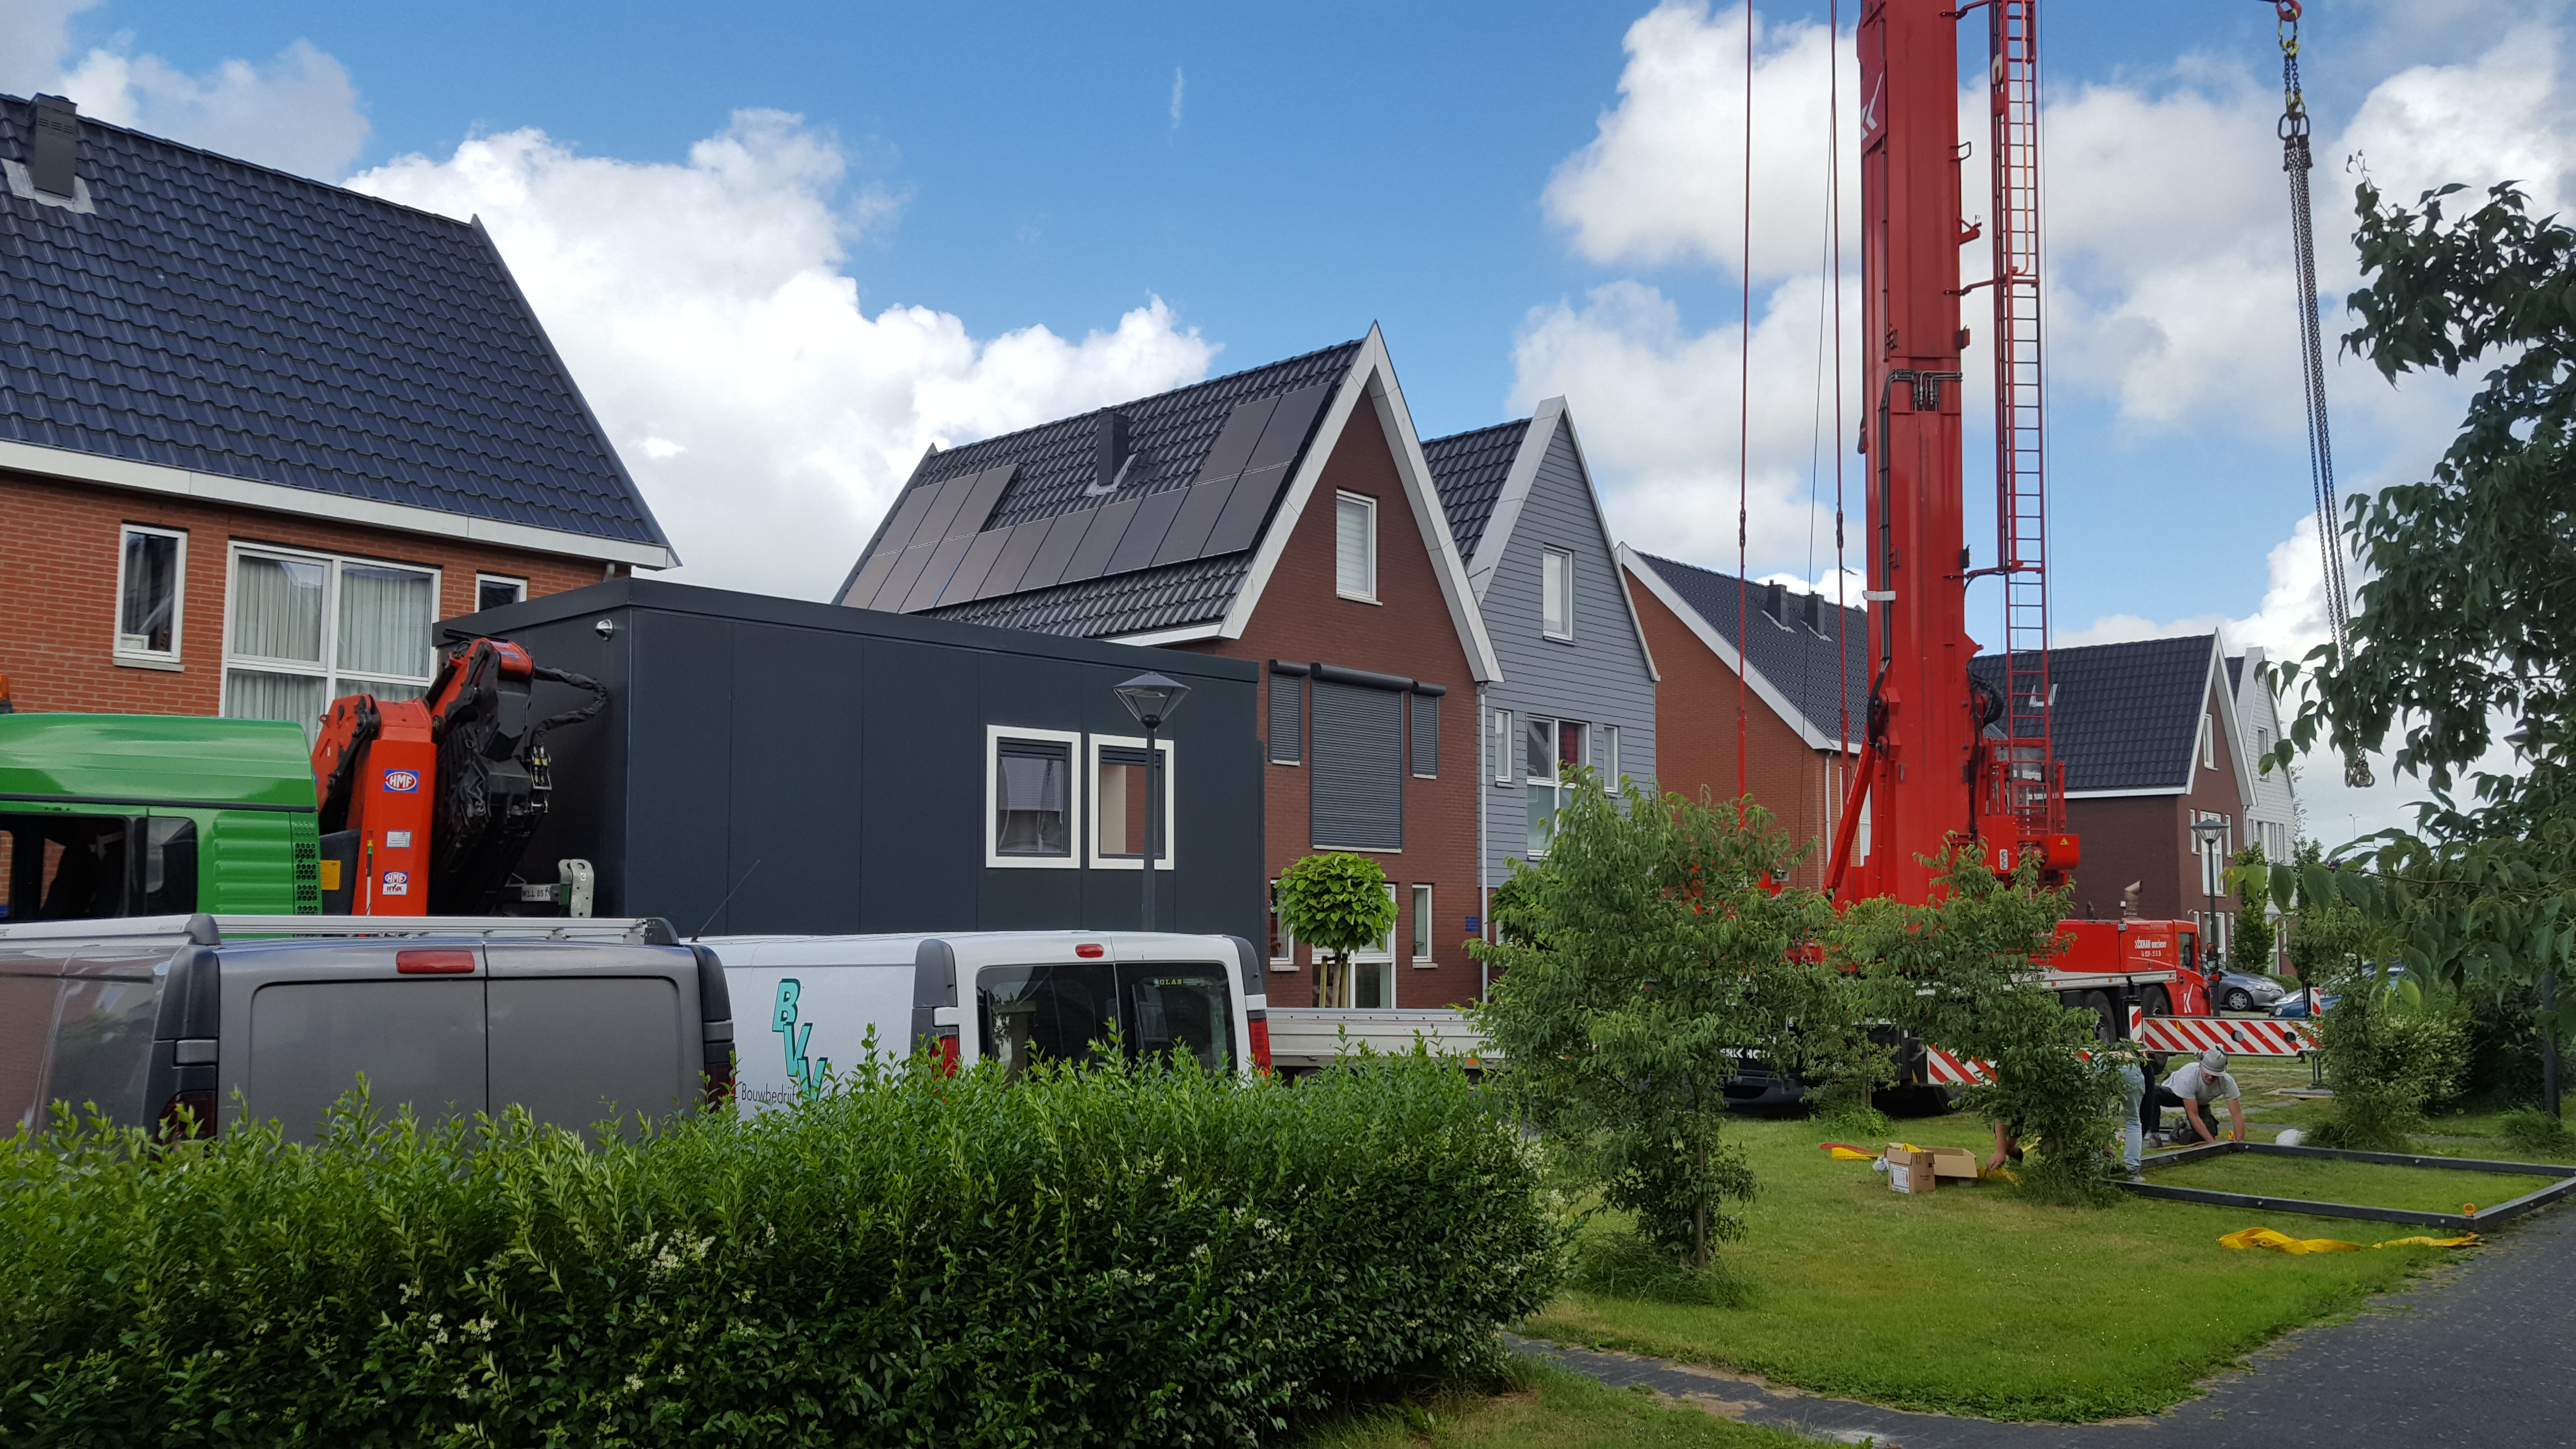 Modulaire Woning Temphouse Zorgeenheid Tempsolutions Modulaire Woningen